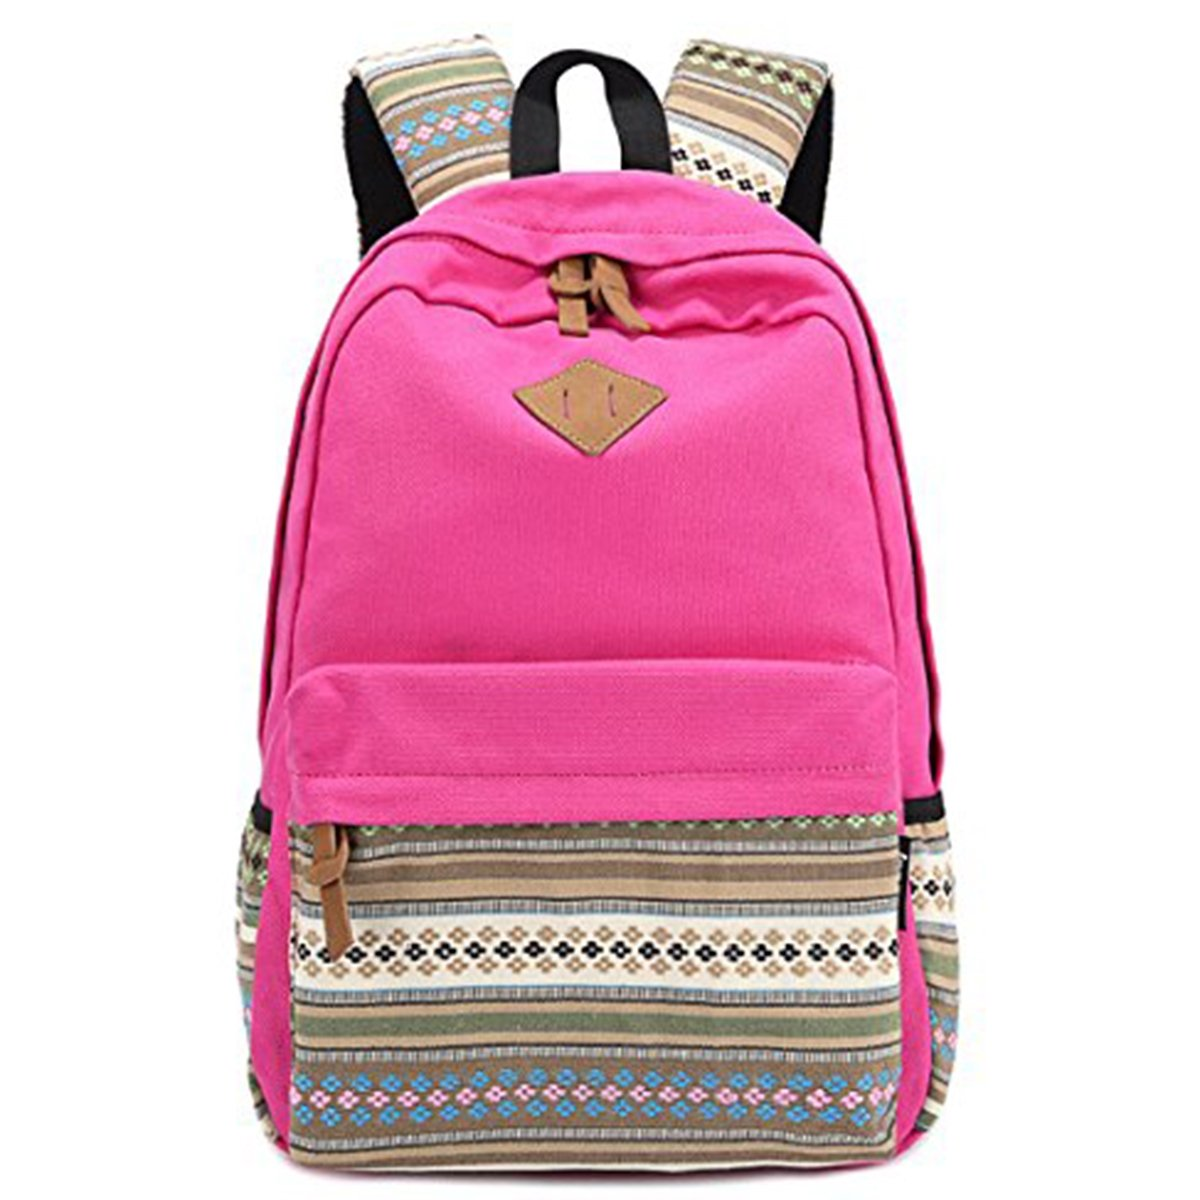 a1ed3342dc free shipping OULII Bohemian Style Girls Double-Shoulder Bag Travel Bag  (Rosy)